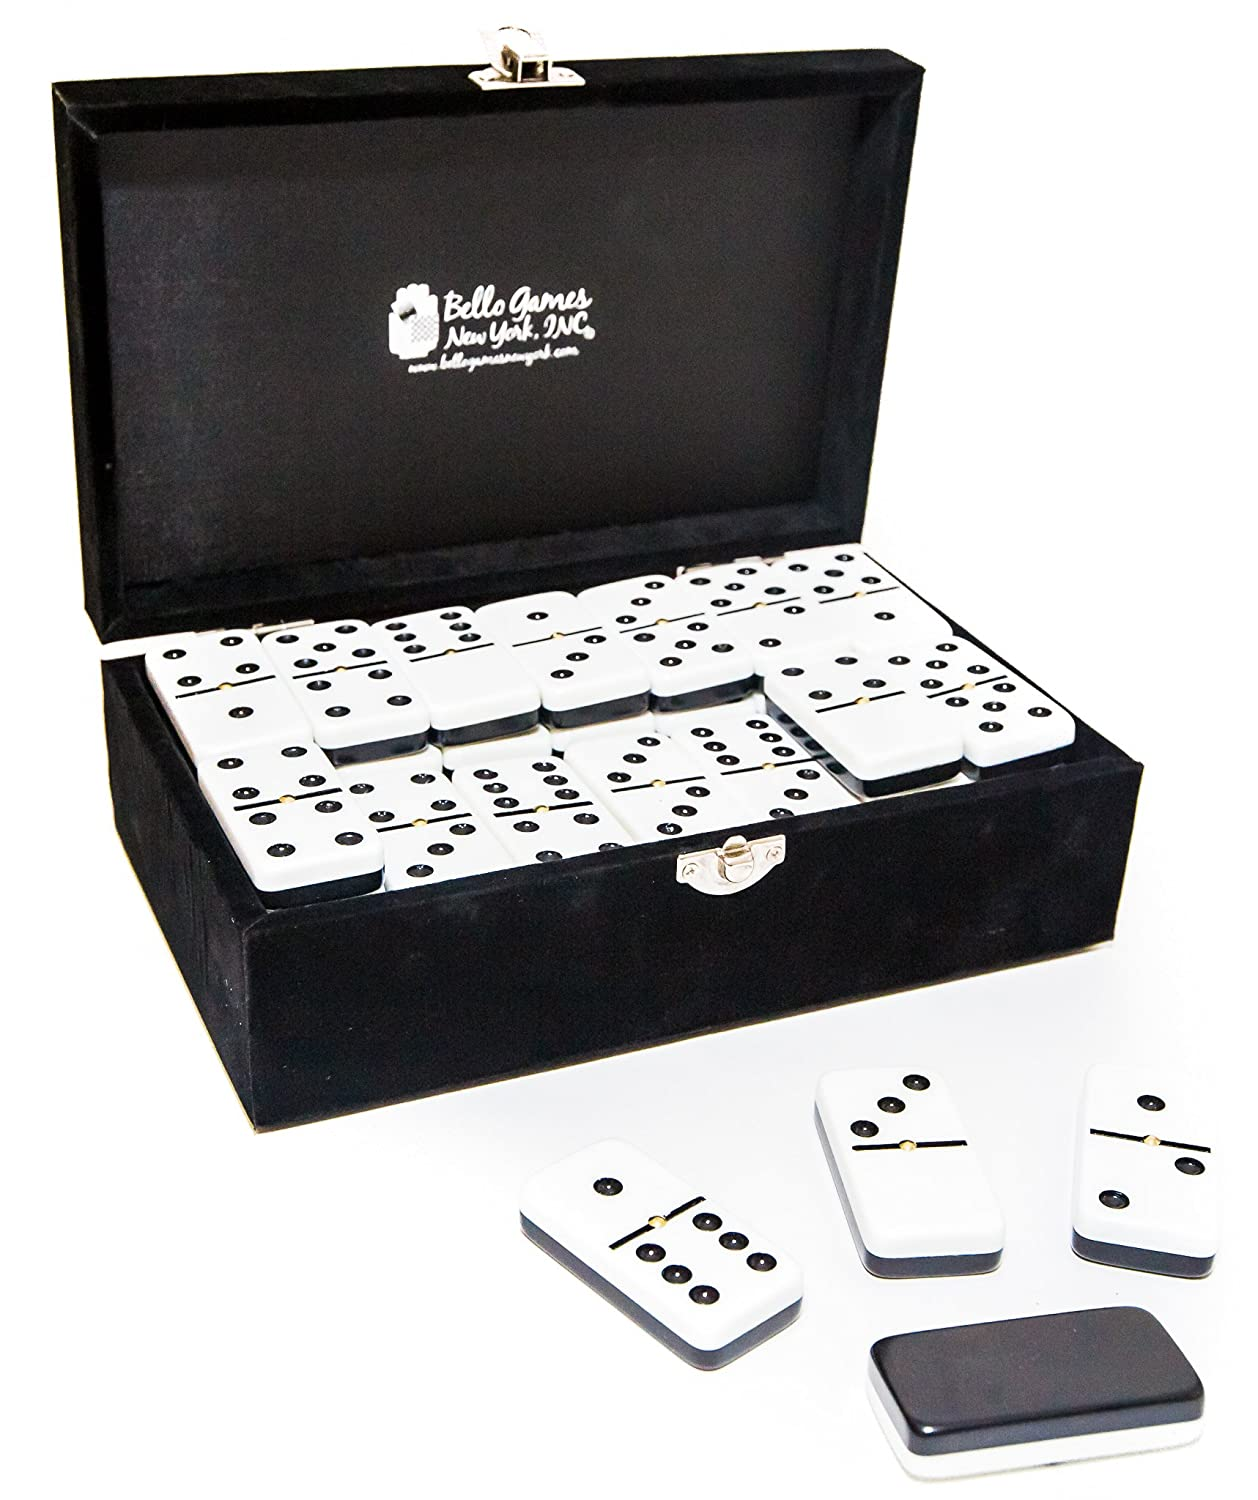 贅沢品 Garment District Professional Double Nine Garment Professional Jumbo Size District Dominoes Set B074T4S1RS, 若葉亭オンラインショップ:346f4152 --- ciadaterra.com